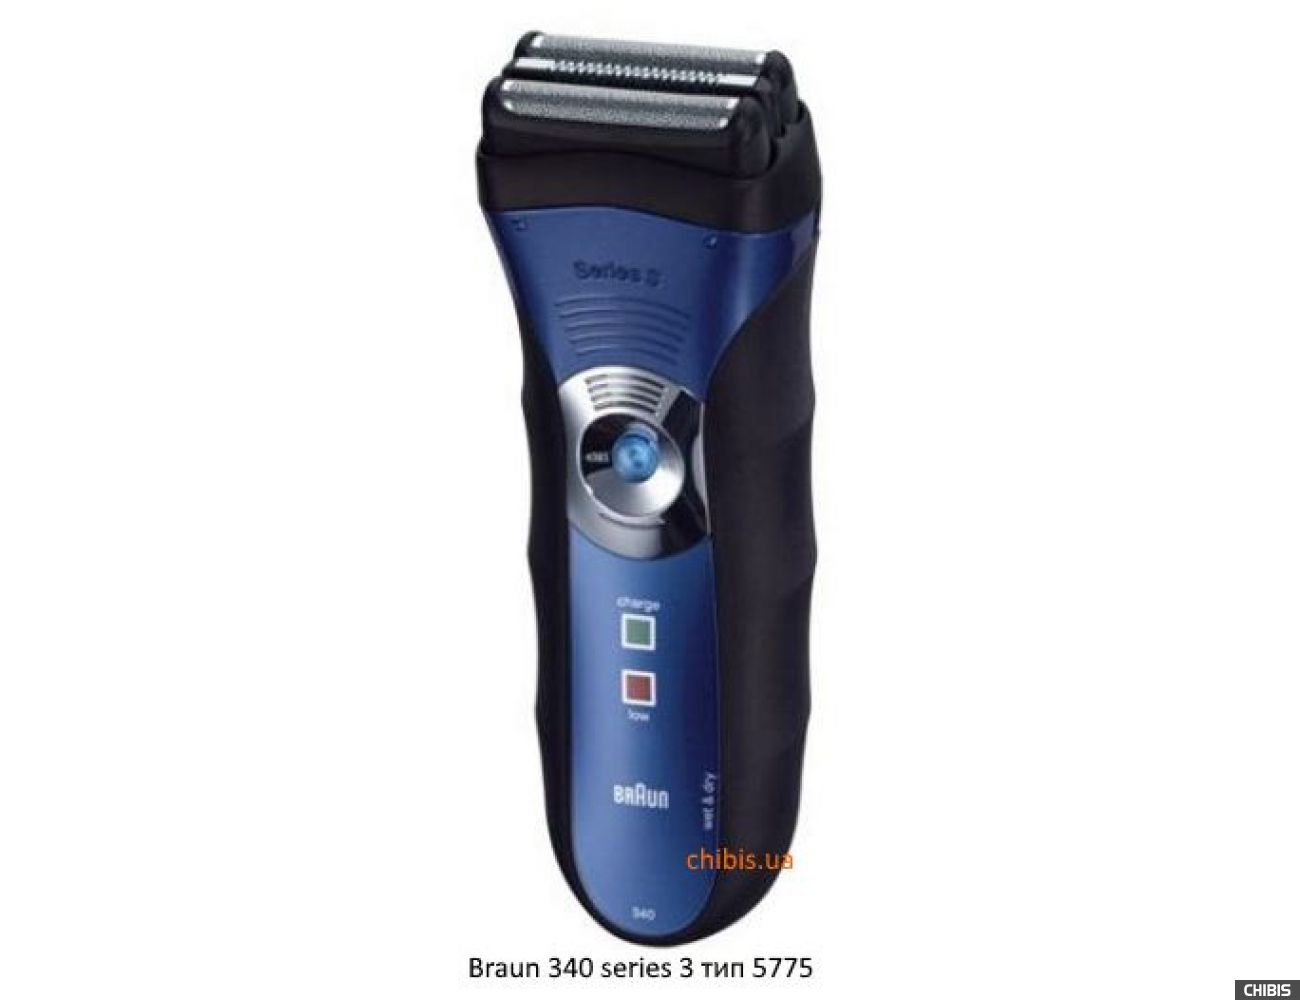 Braun 340 series 3 тип 5775